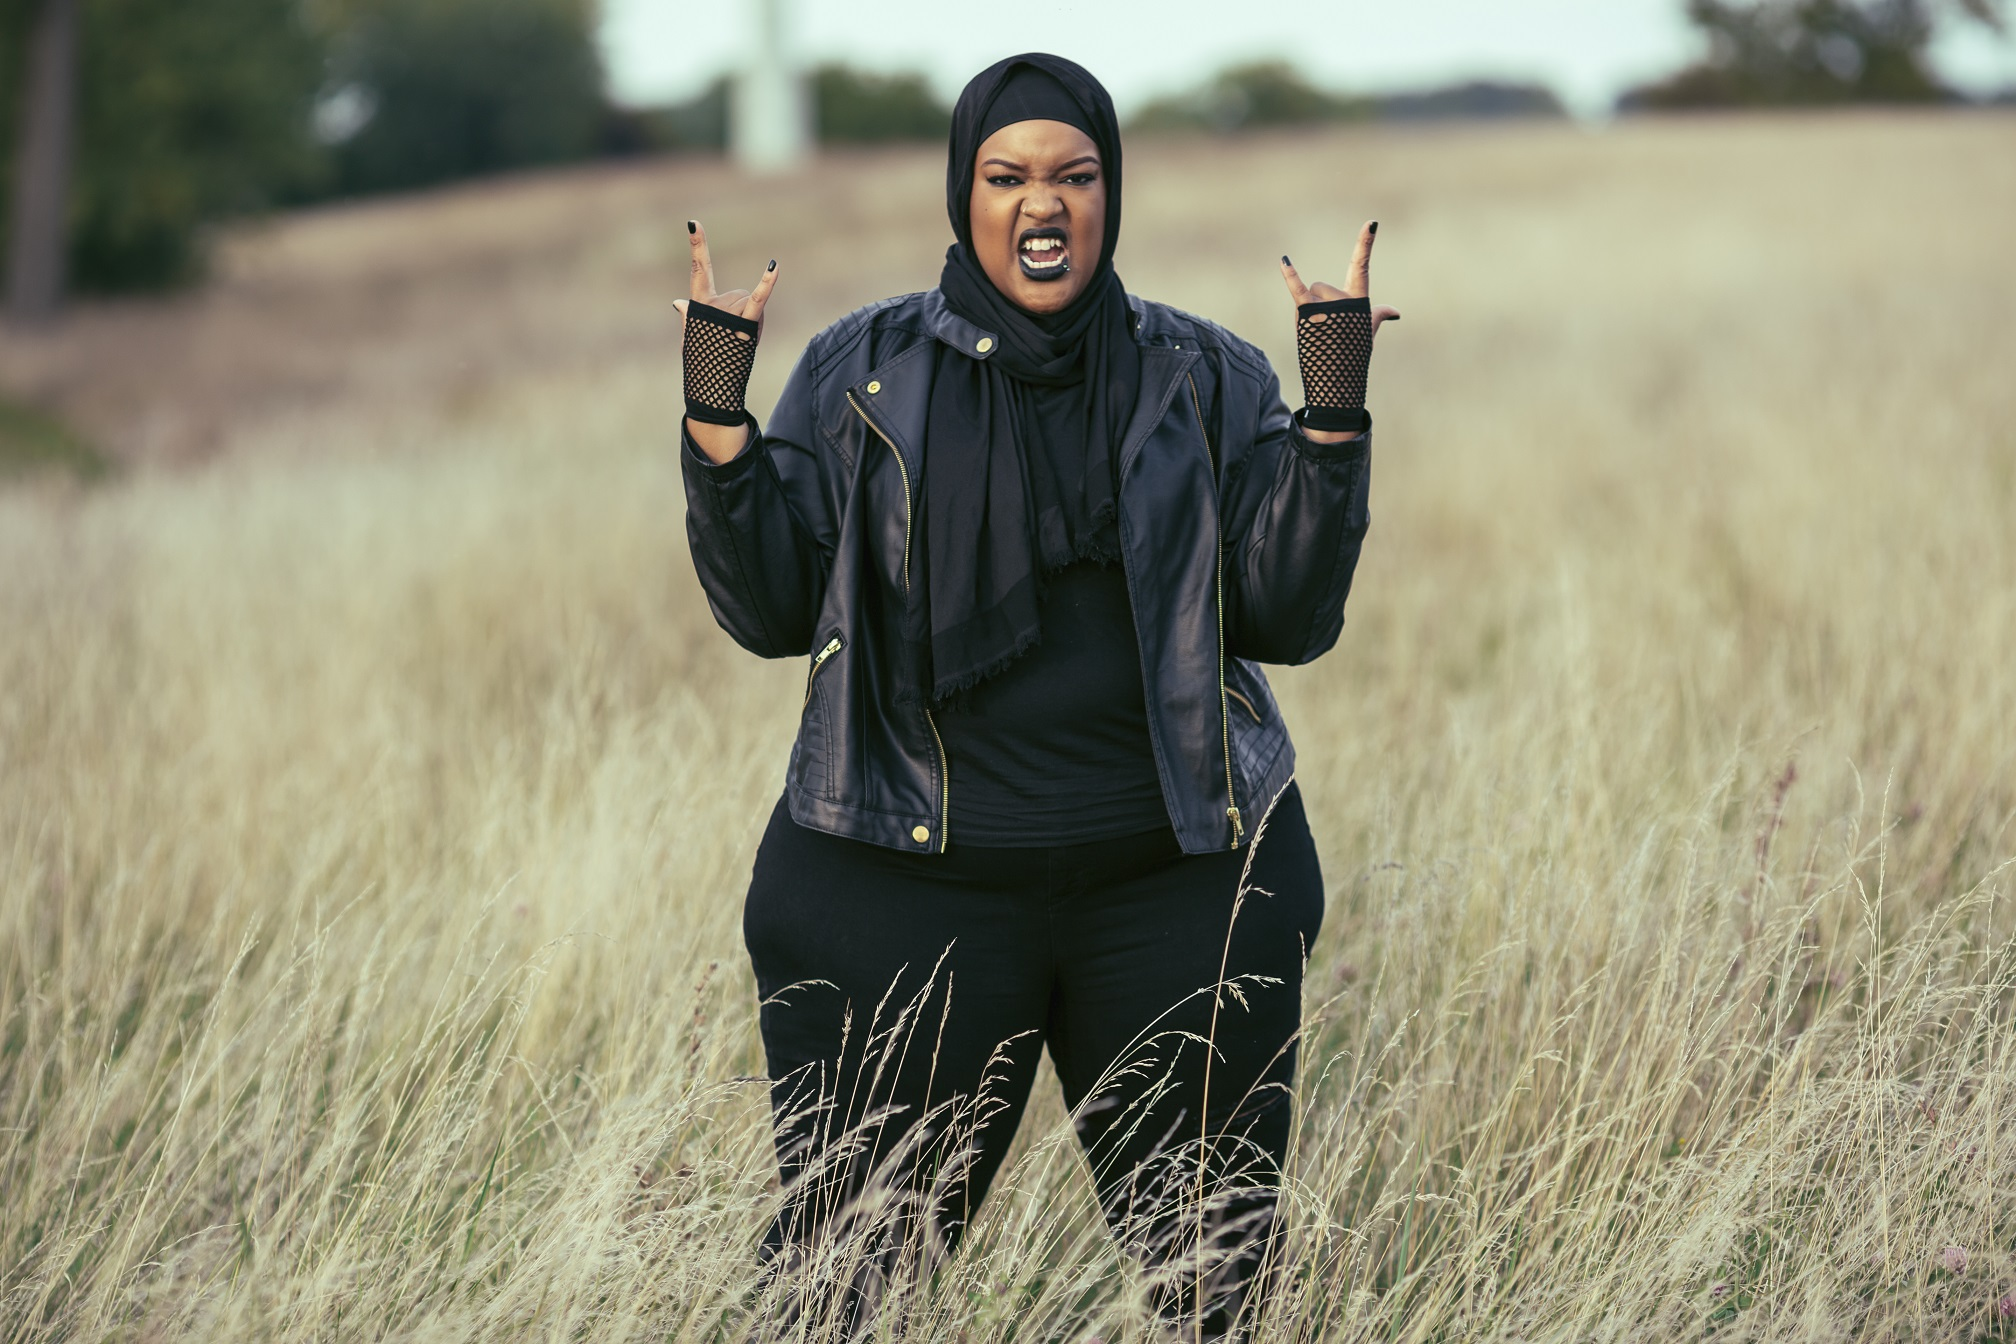 Leah-Vernon-Muslim-Girl-Plus-Size-Model-Detroit-Body-Positive-Writer.jpg